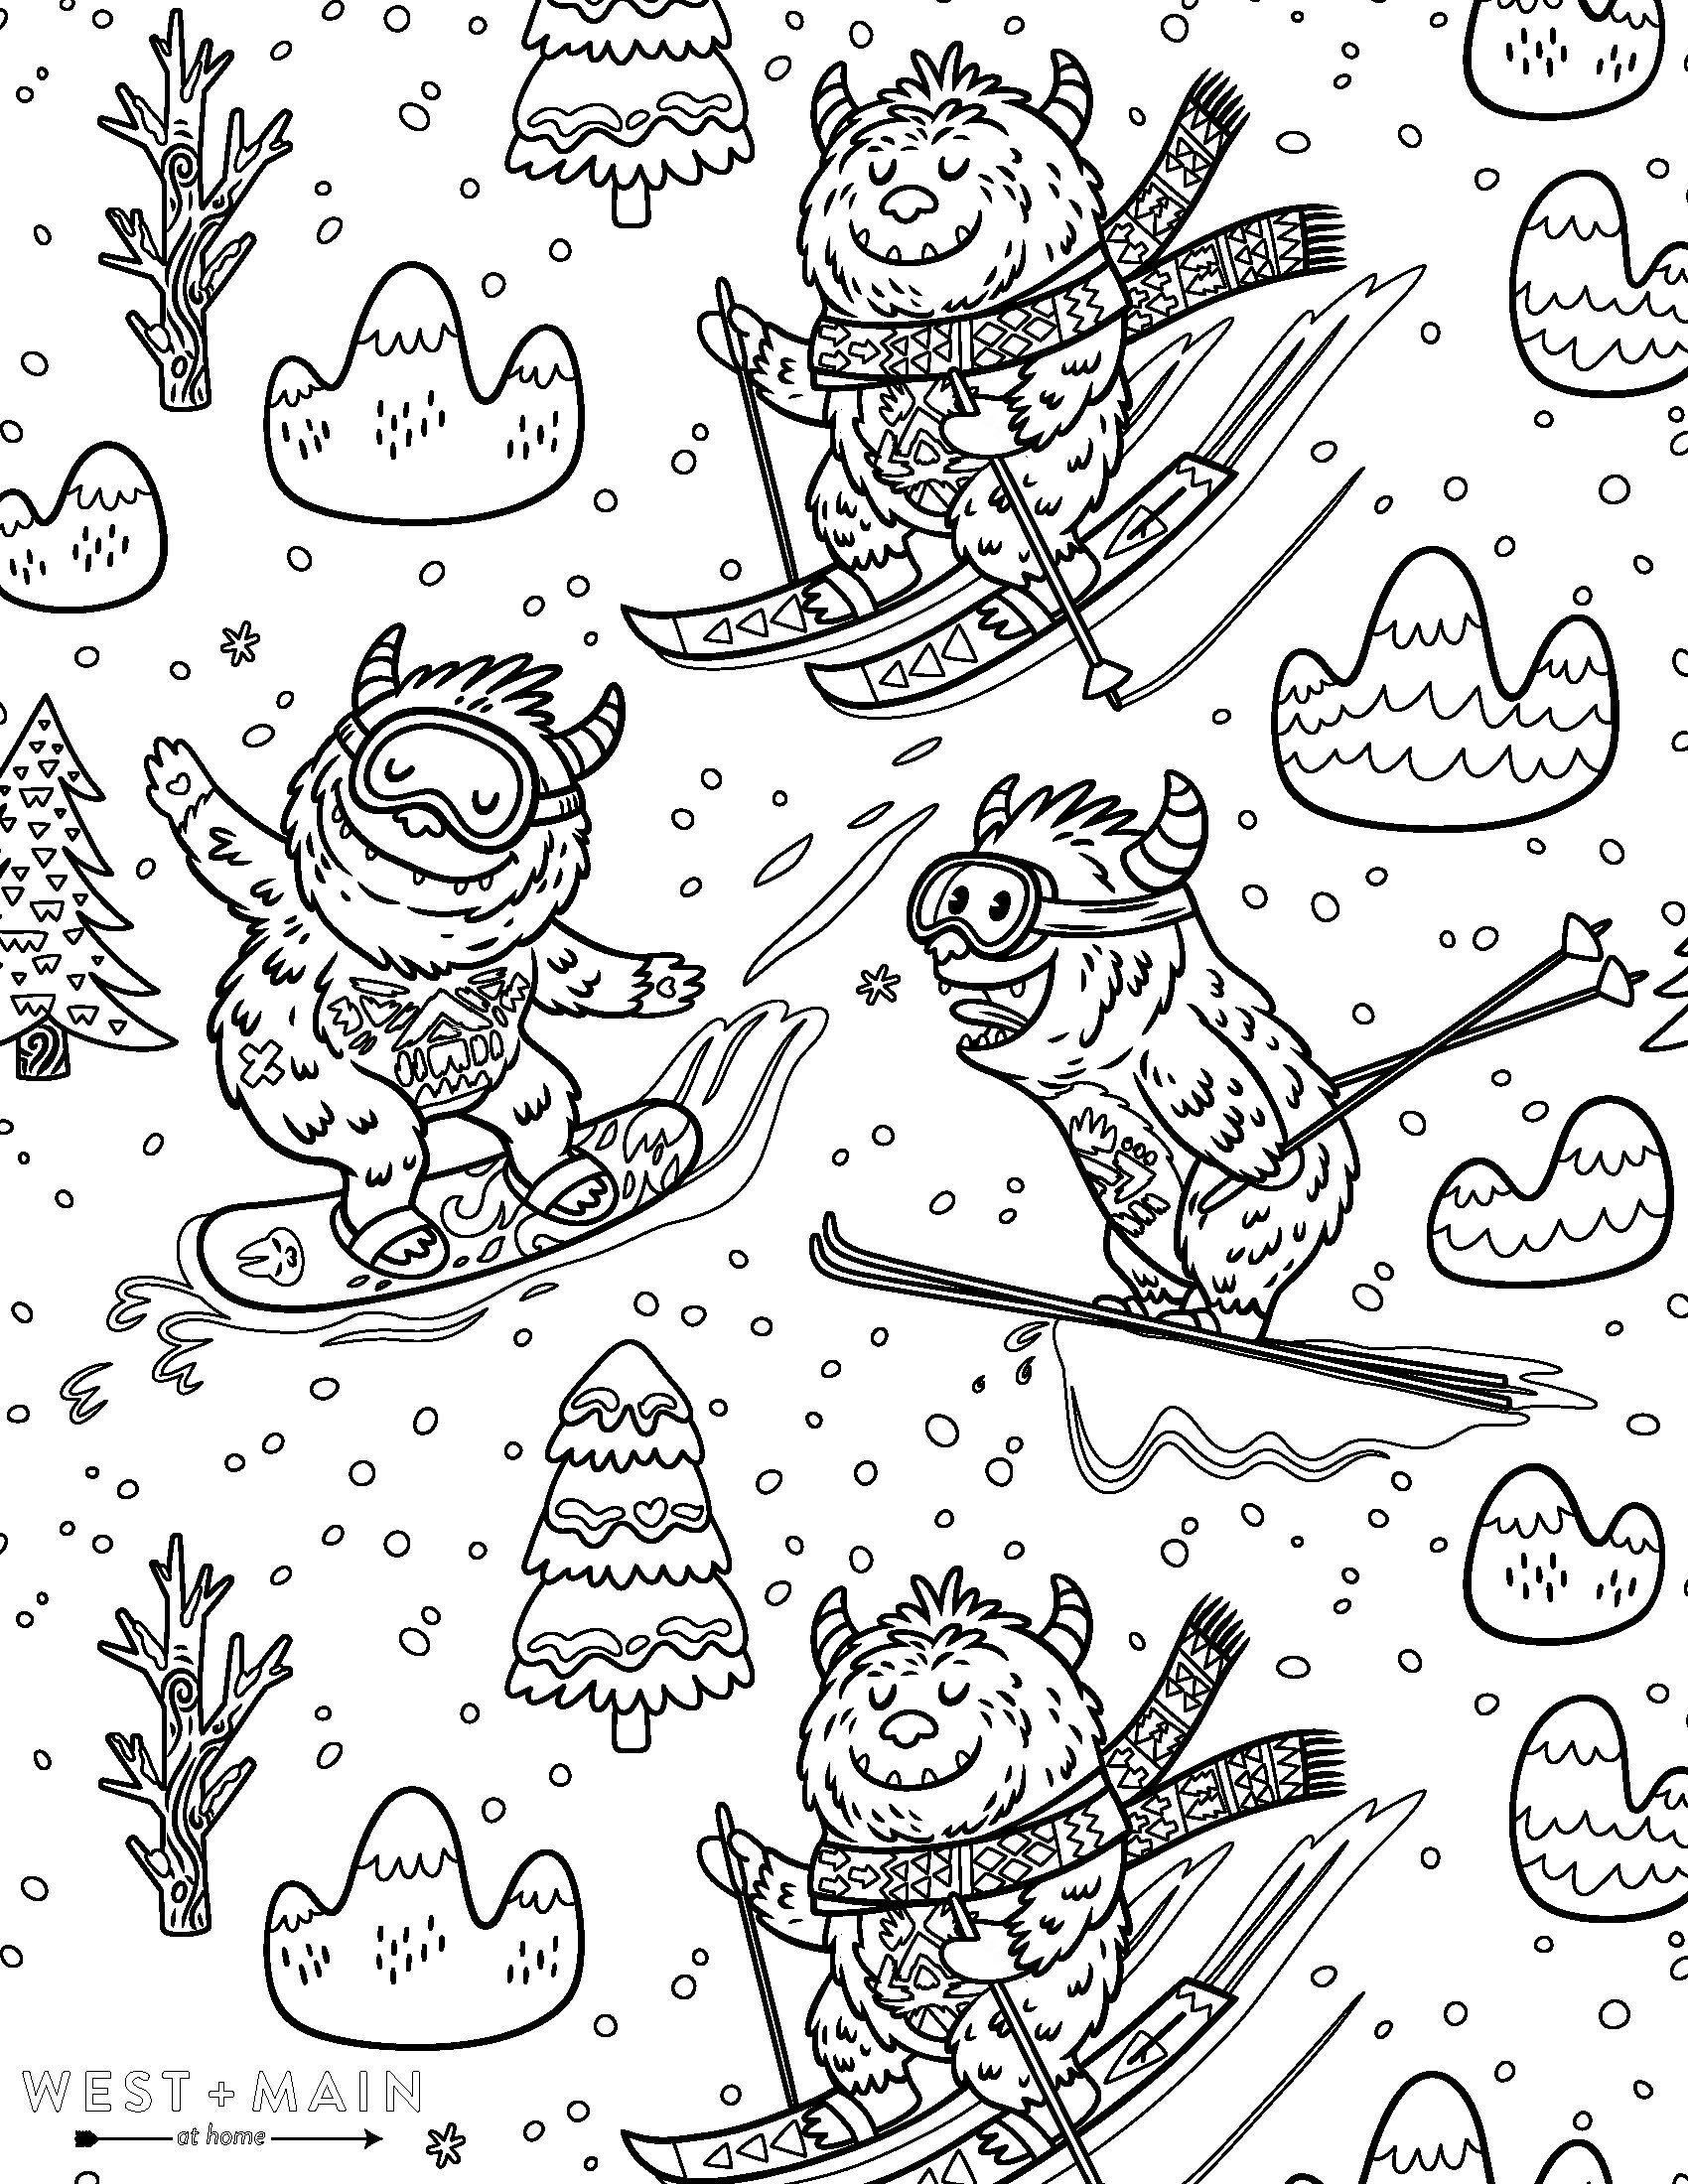 Stay Home + Color! Download West + Main Coloring Sheets to